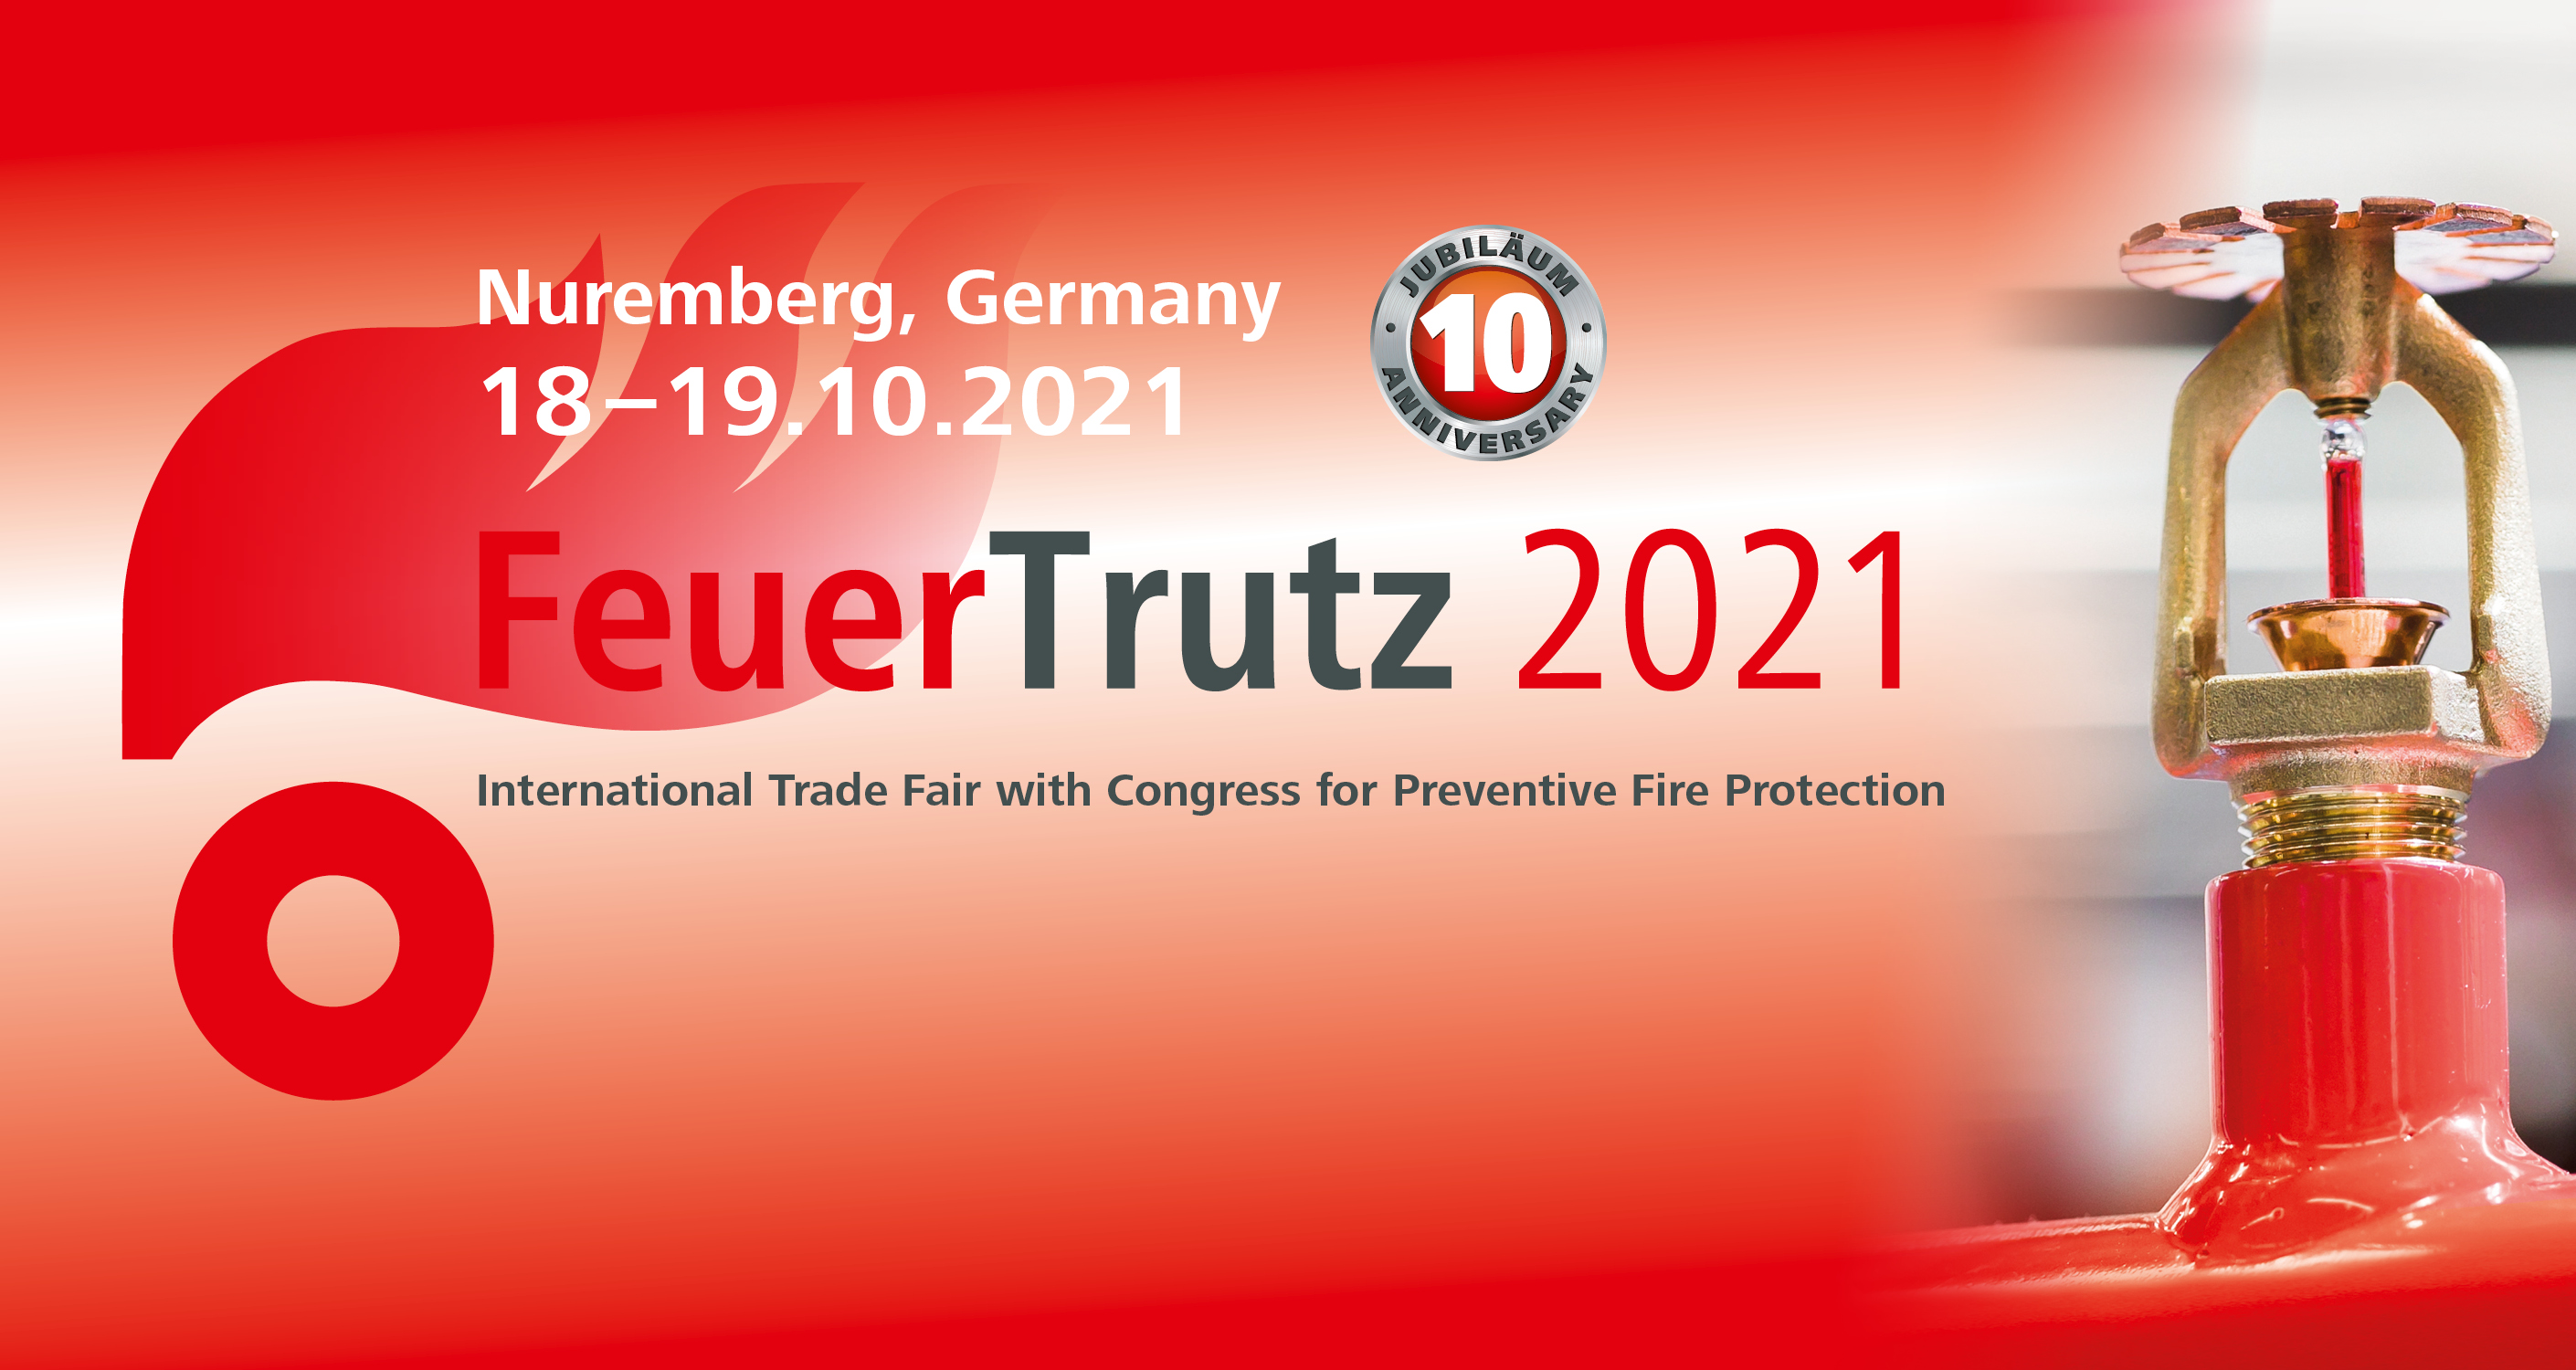 FeuerTrutz 2021 - Become an exhibitor now!